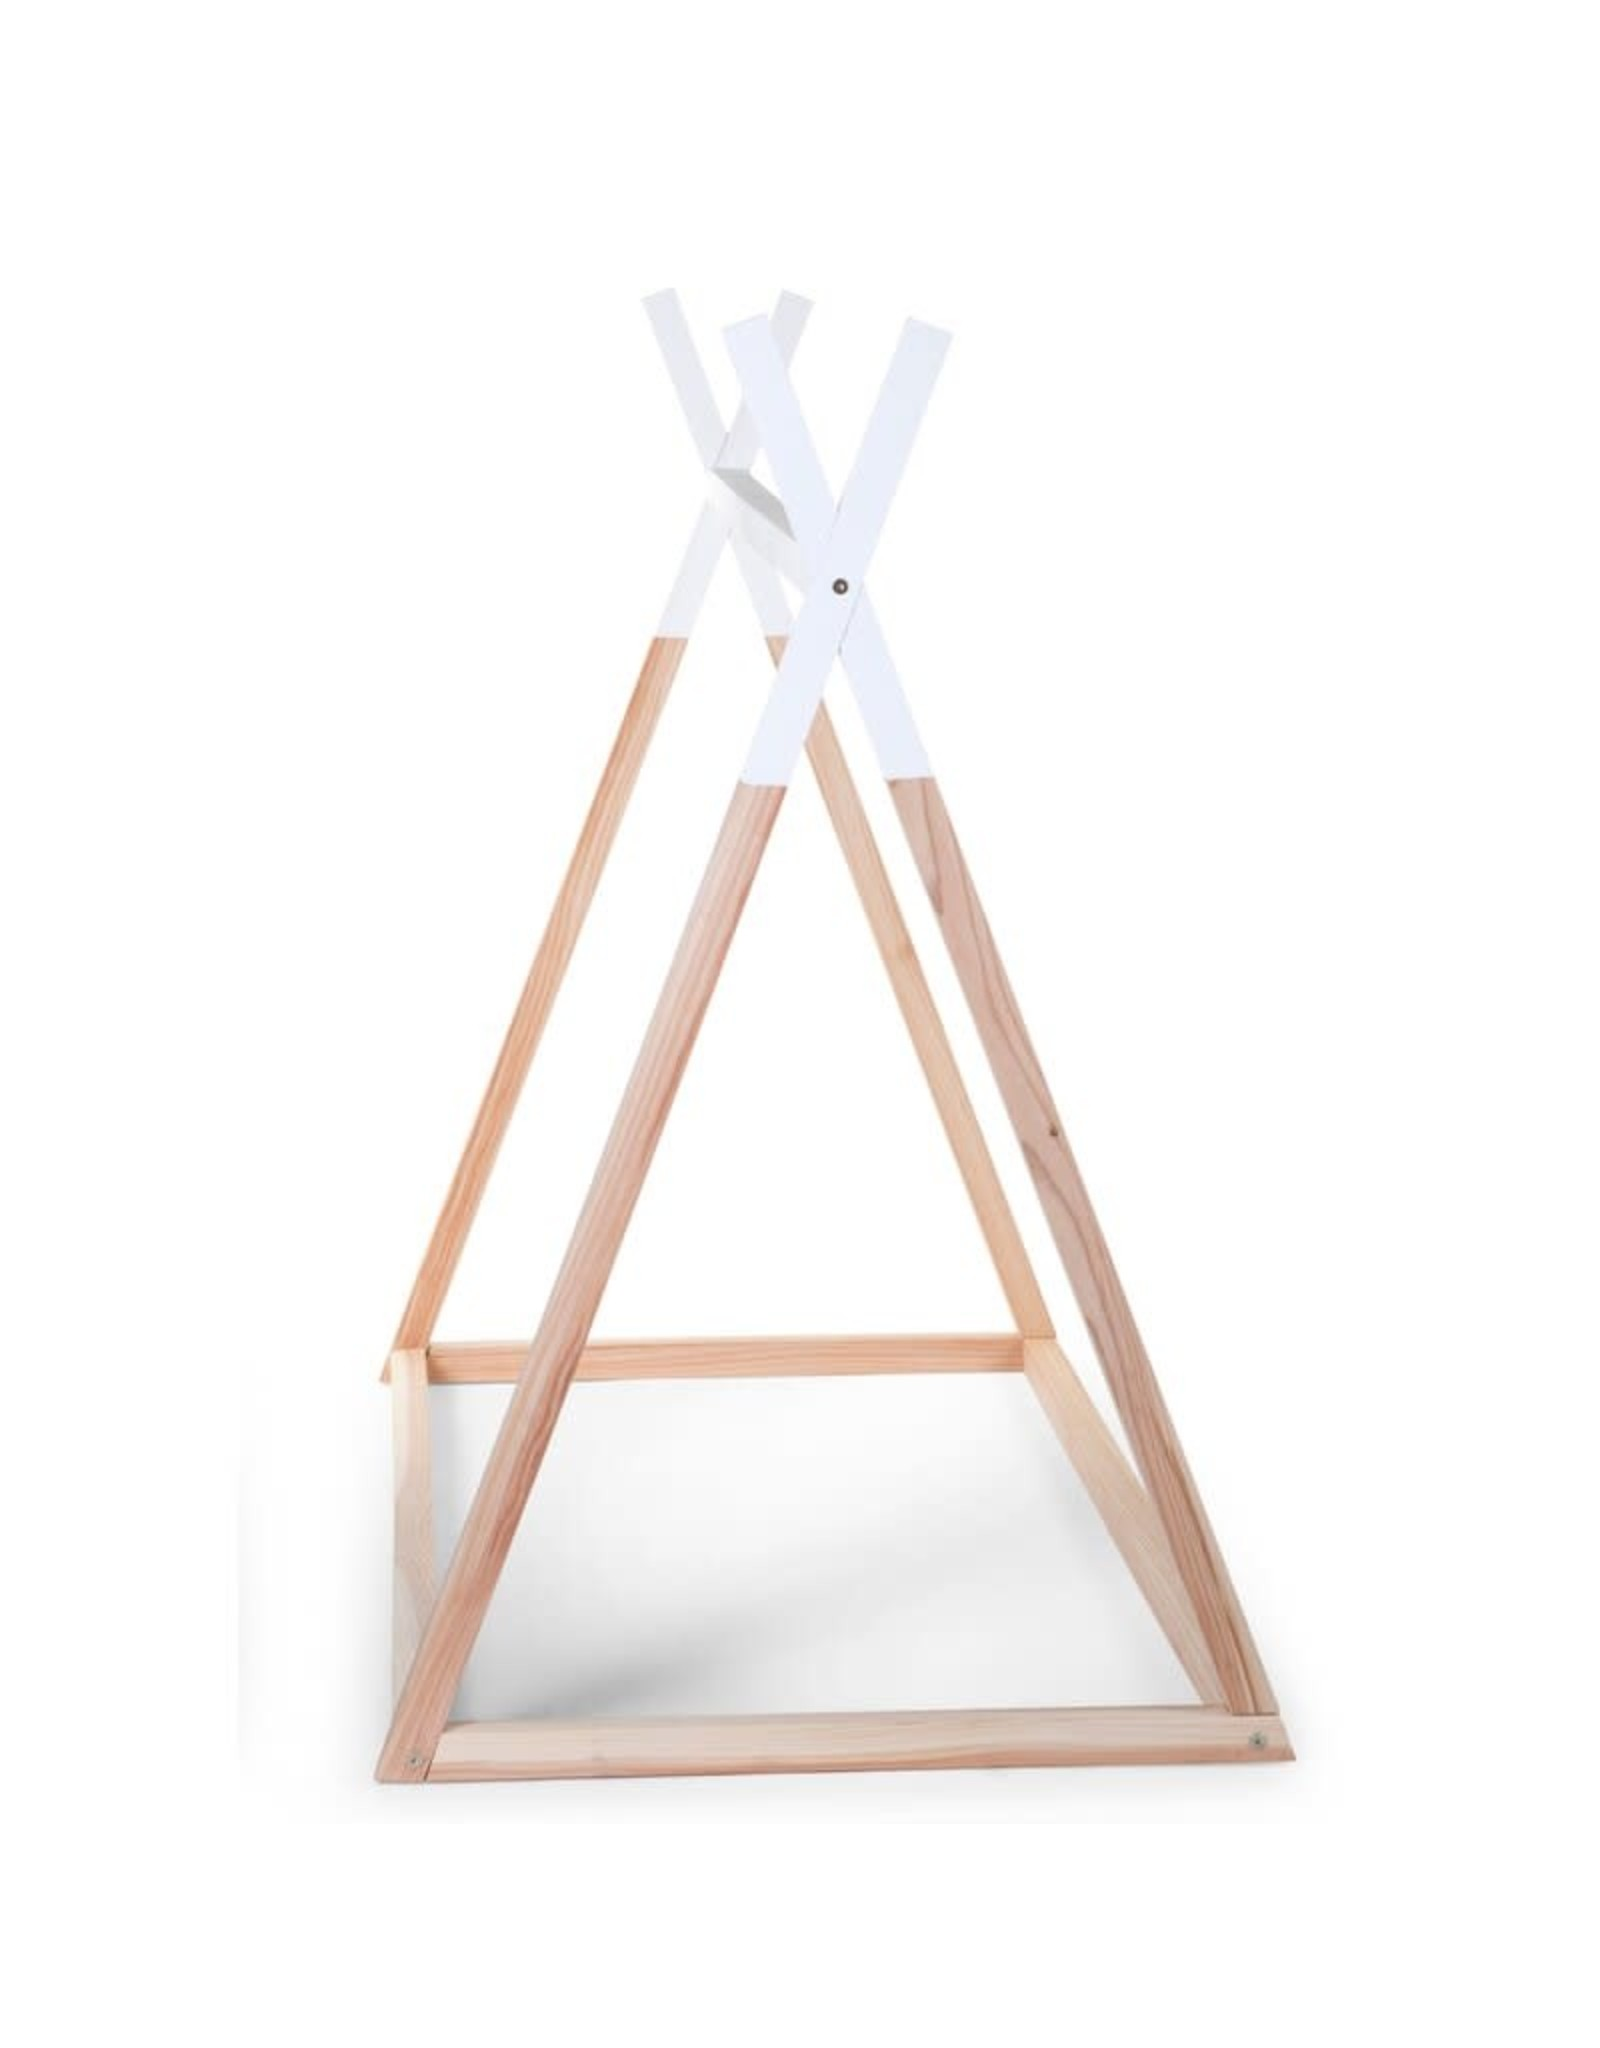 Childhome Childhome Tipi Bed - 70x140 Cm - Hout - Naturel Wit